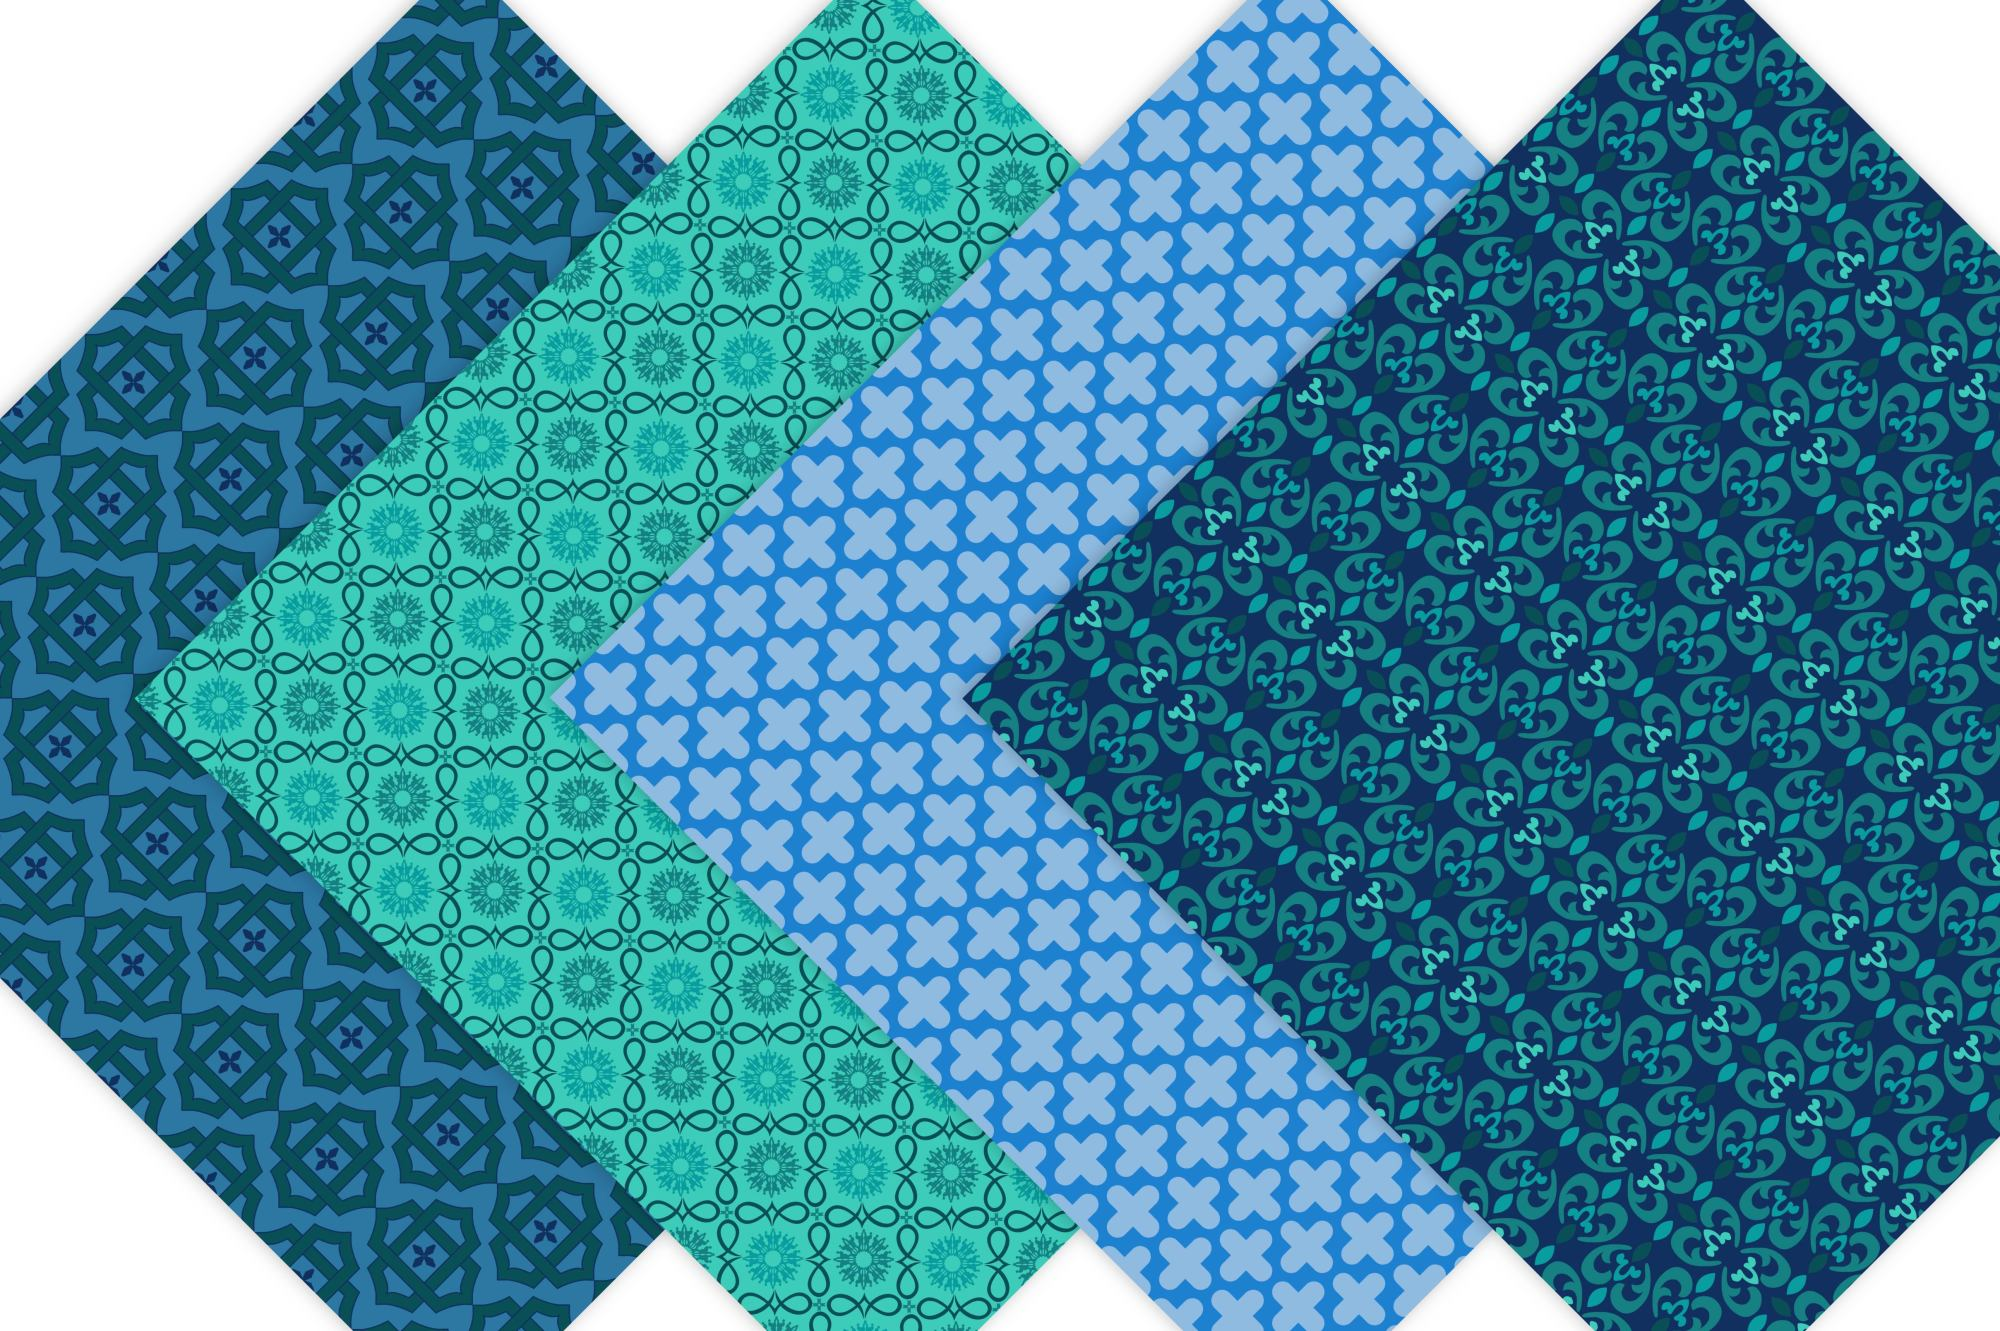 Moroccan Digital Paper Patterns example image 5